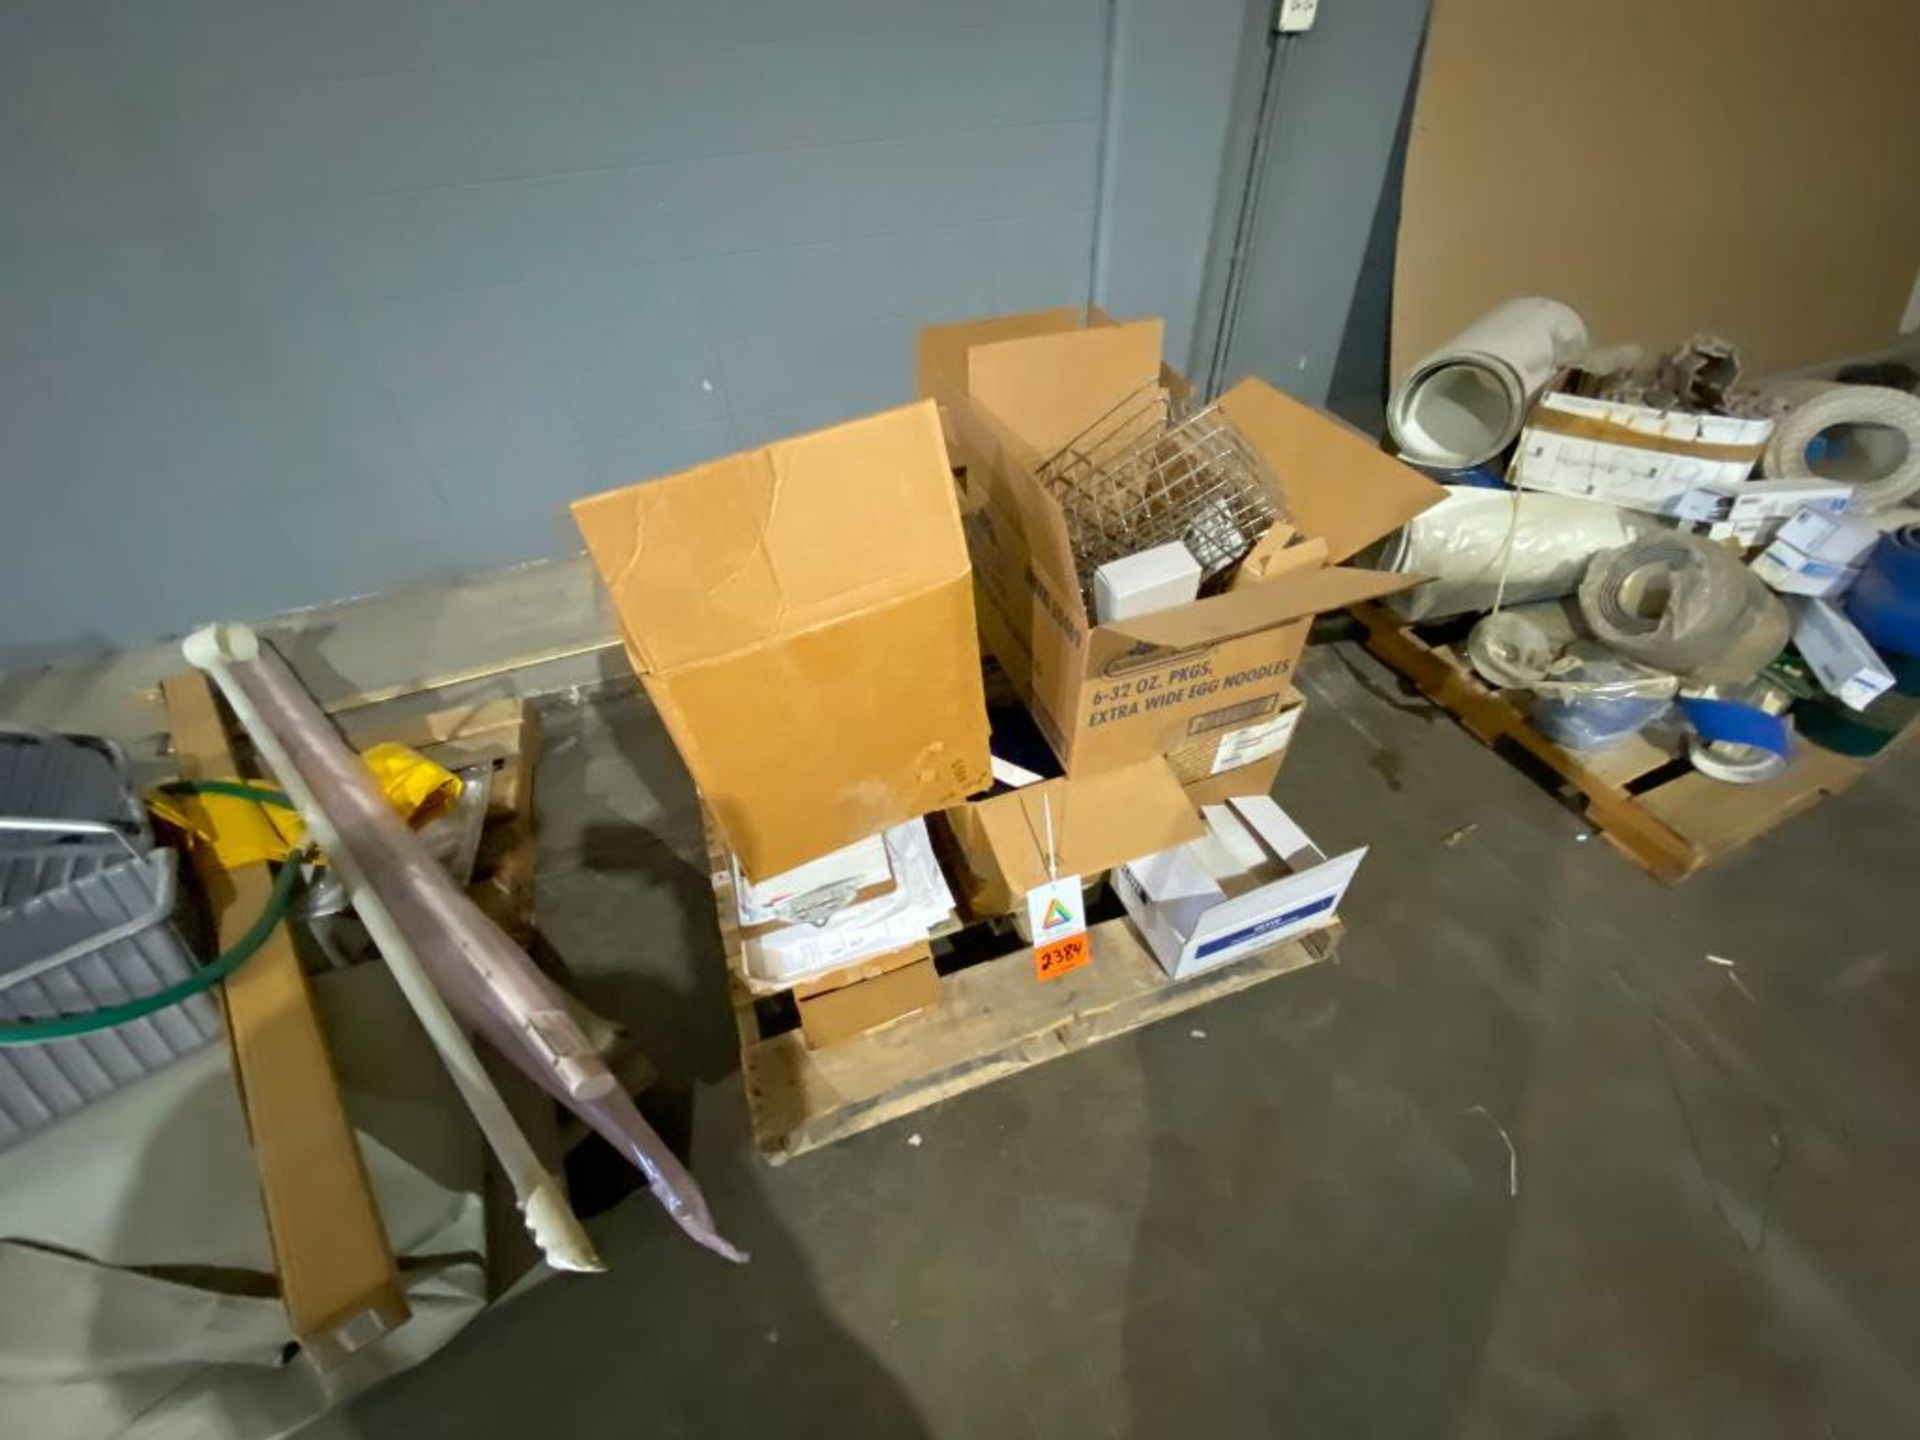 butterfly valve parts, manuals, and lab equipment - Image 2 of 5